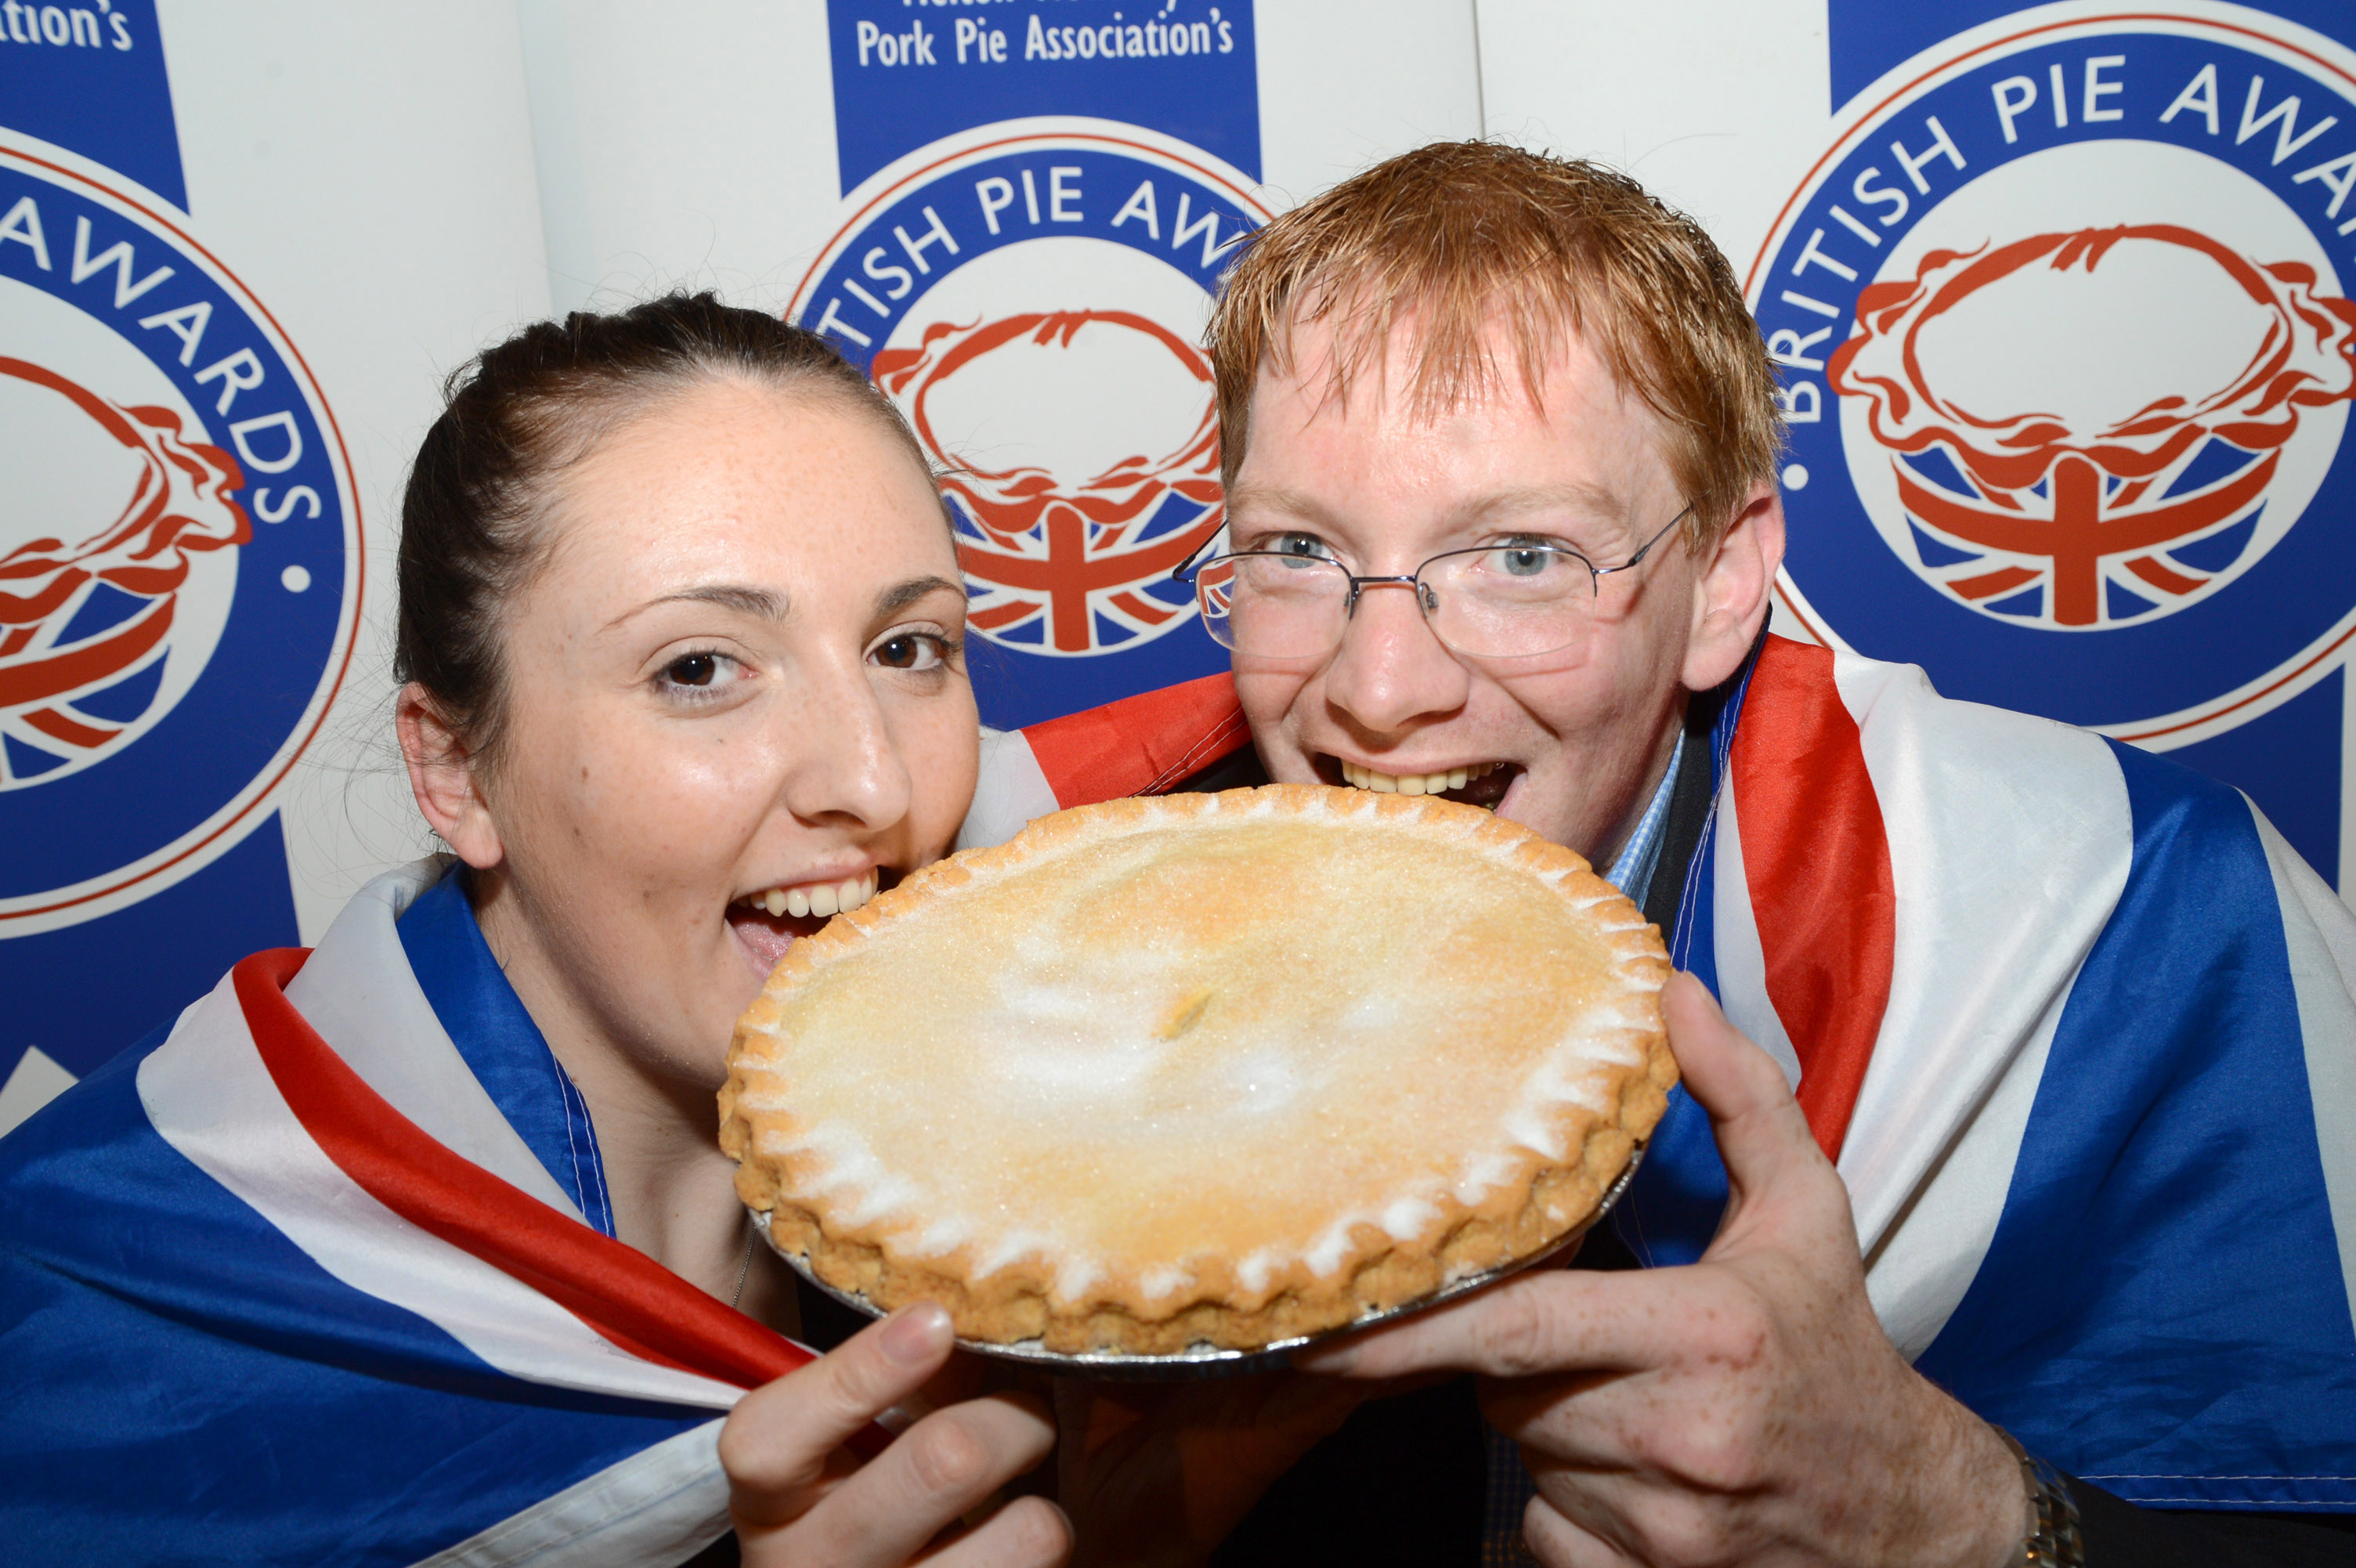 British Pie Awards Supreme Champion Bramley Apple Pies.